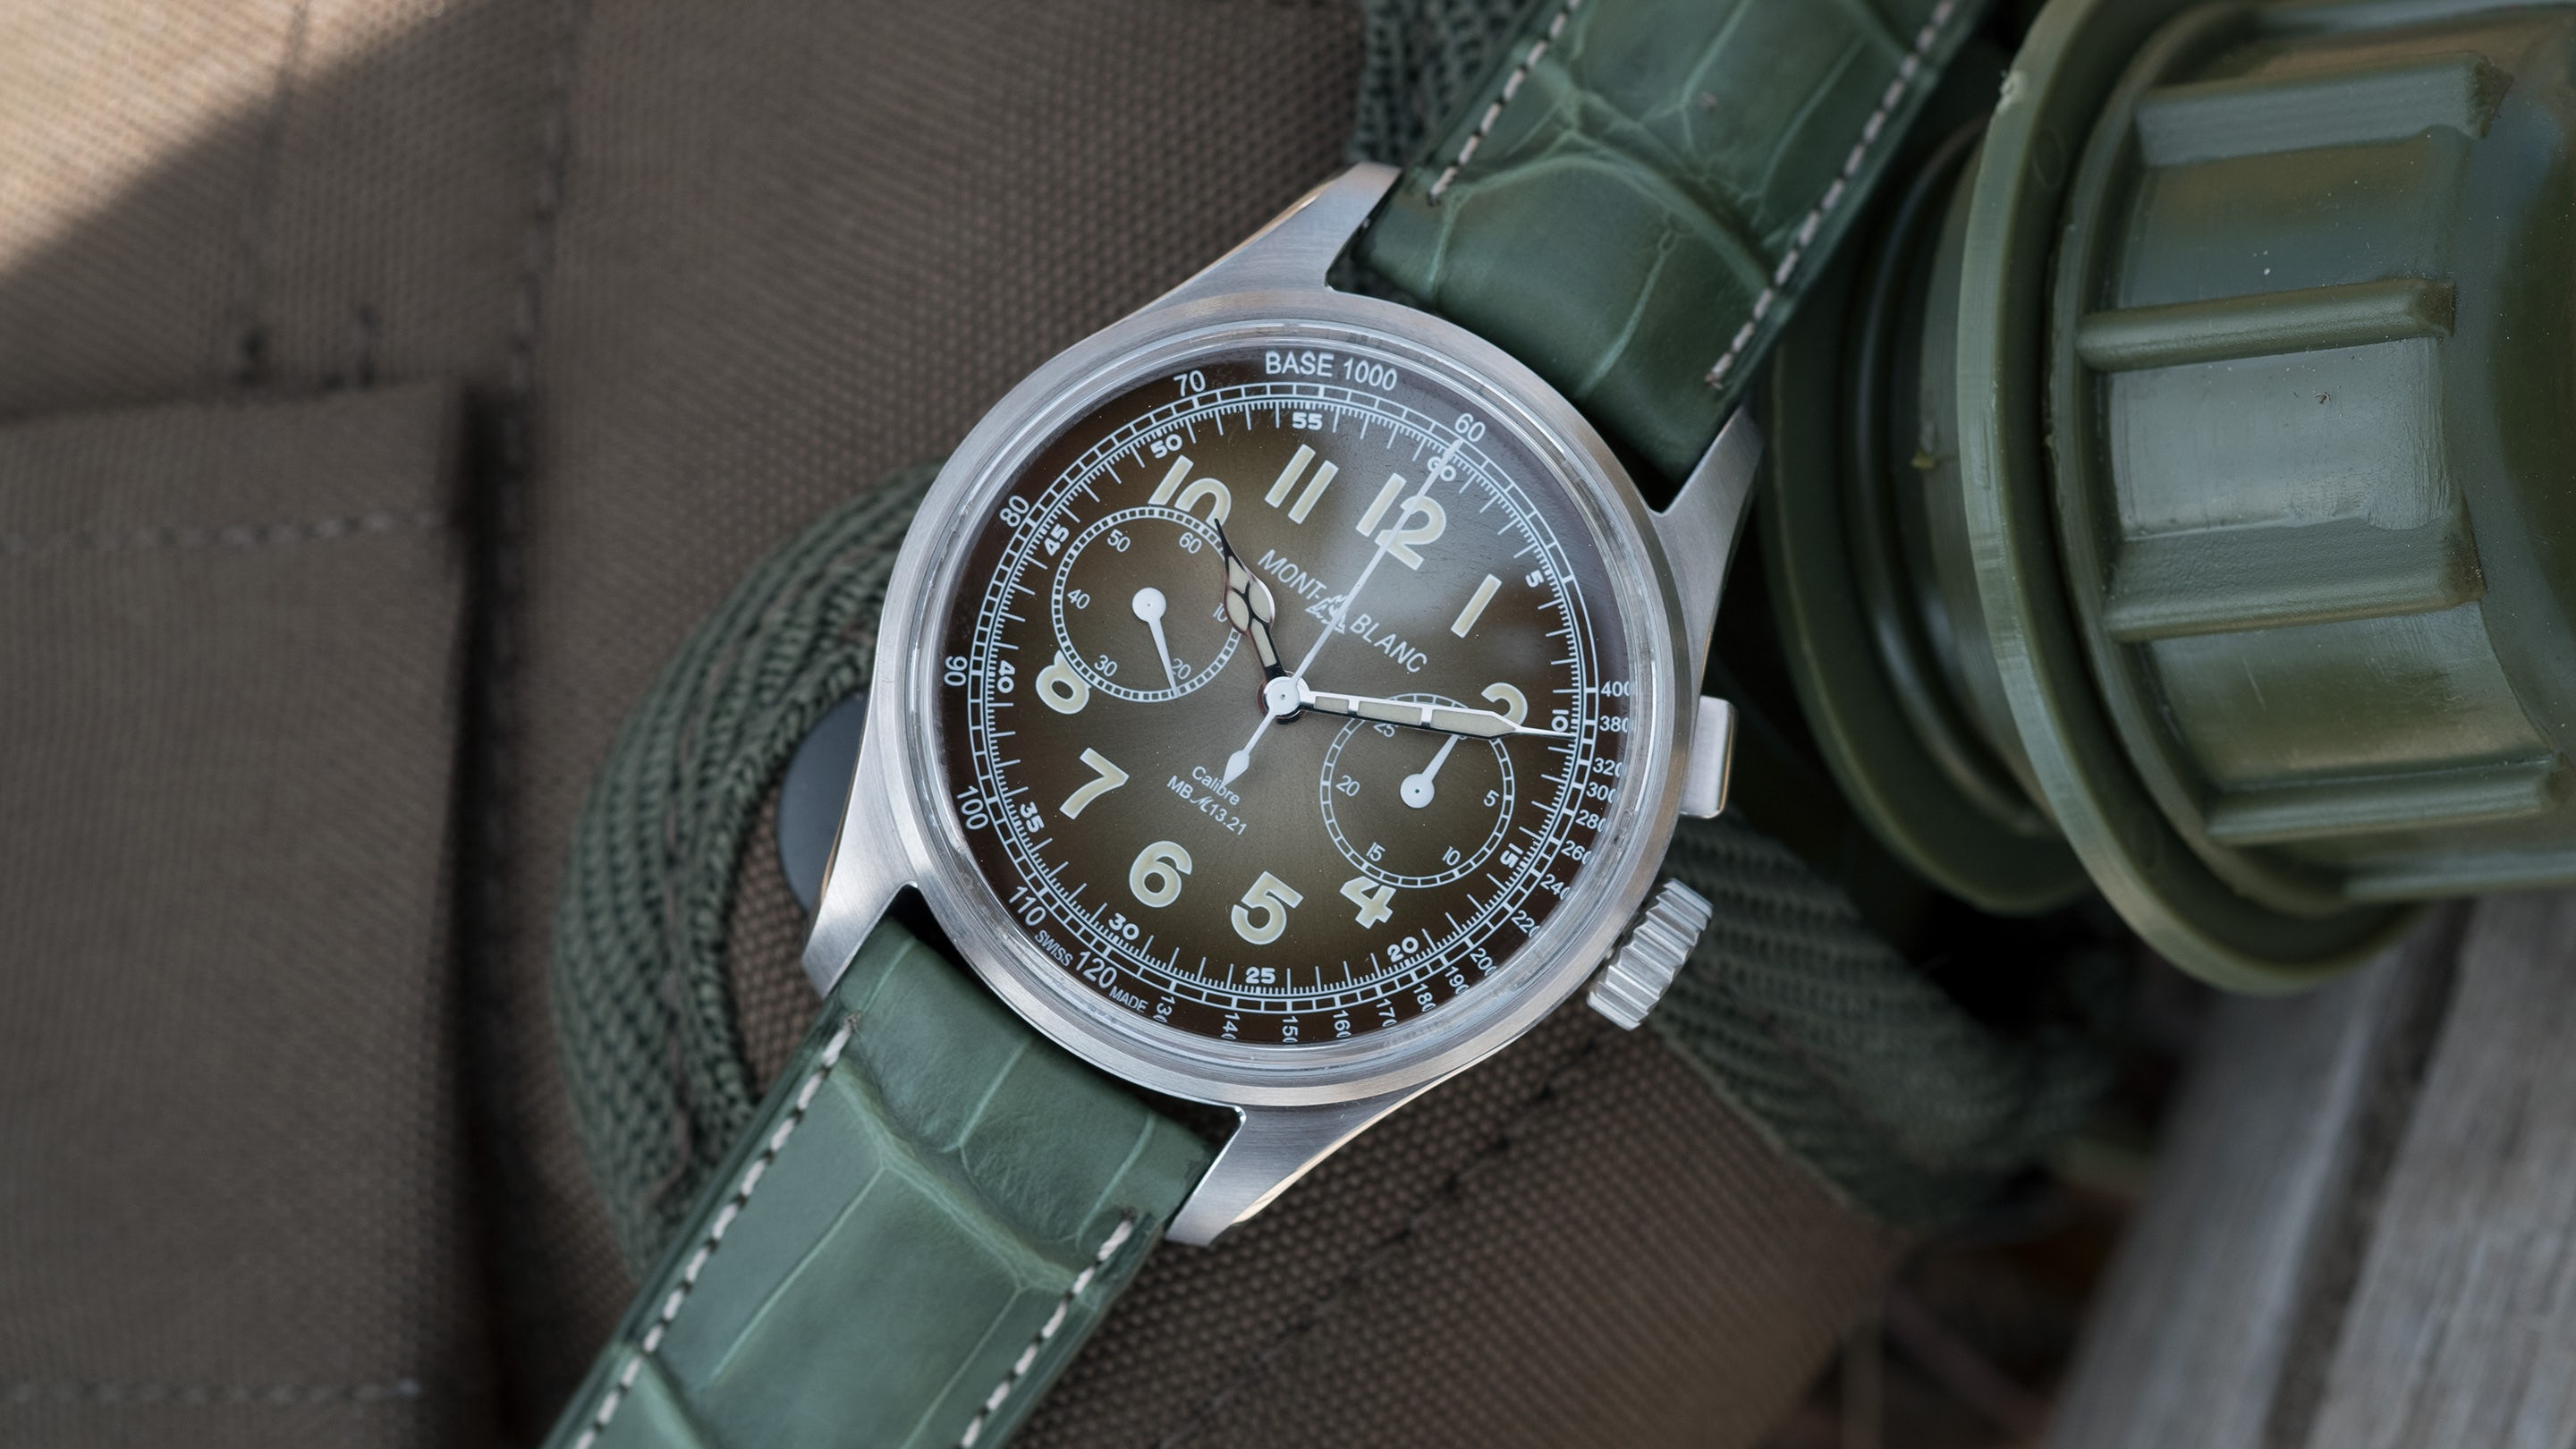 Montblanc 1858 Monopusher Chronograph Limited Edition 100